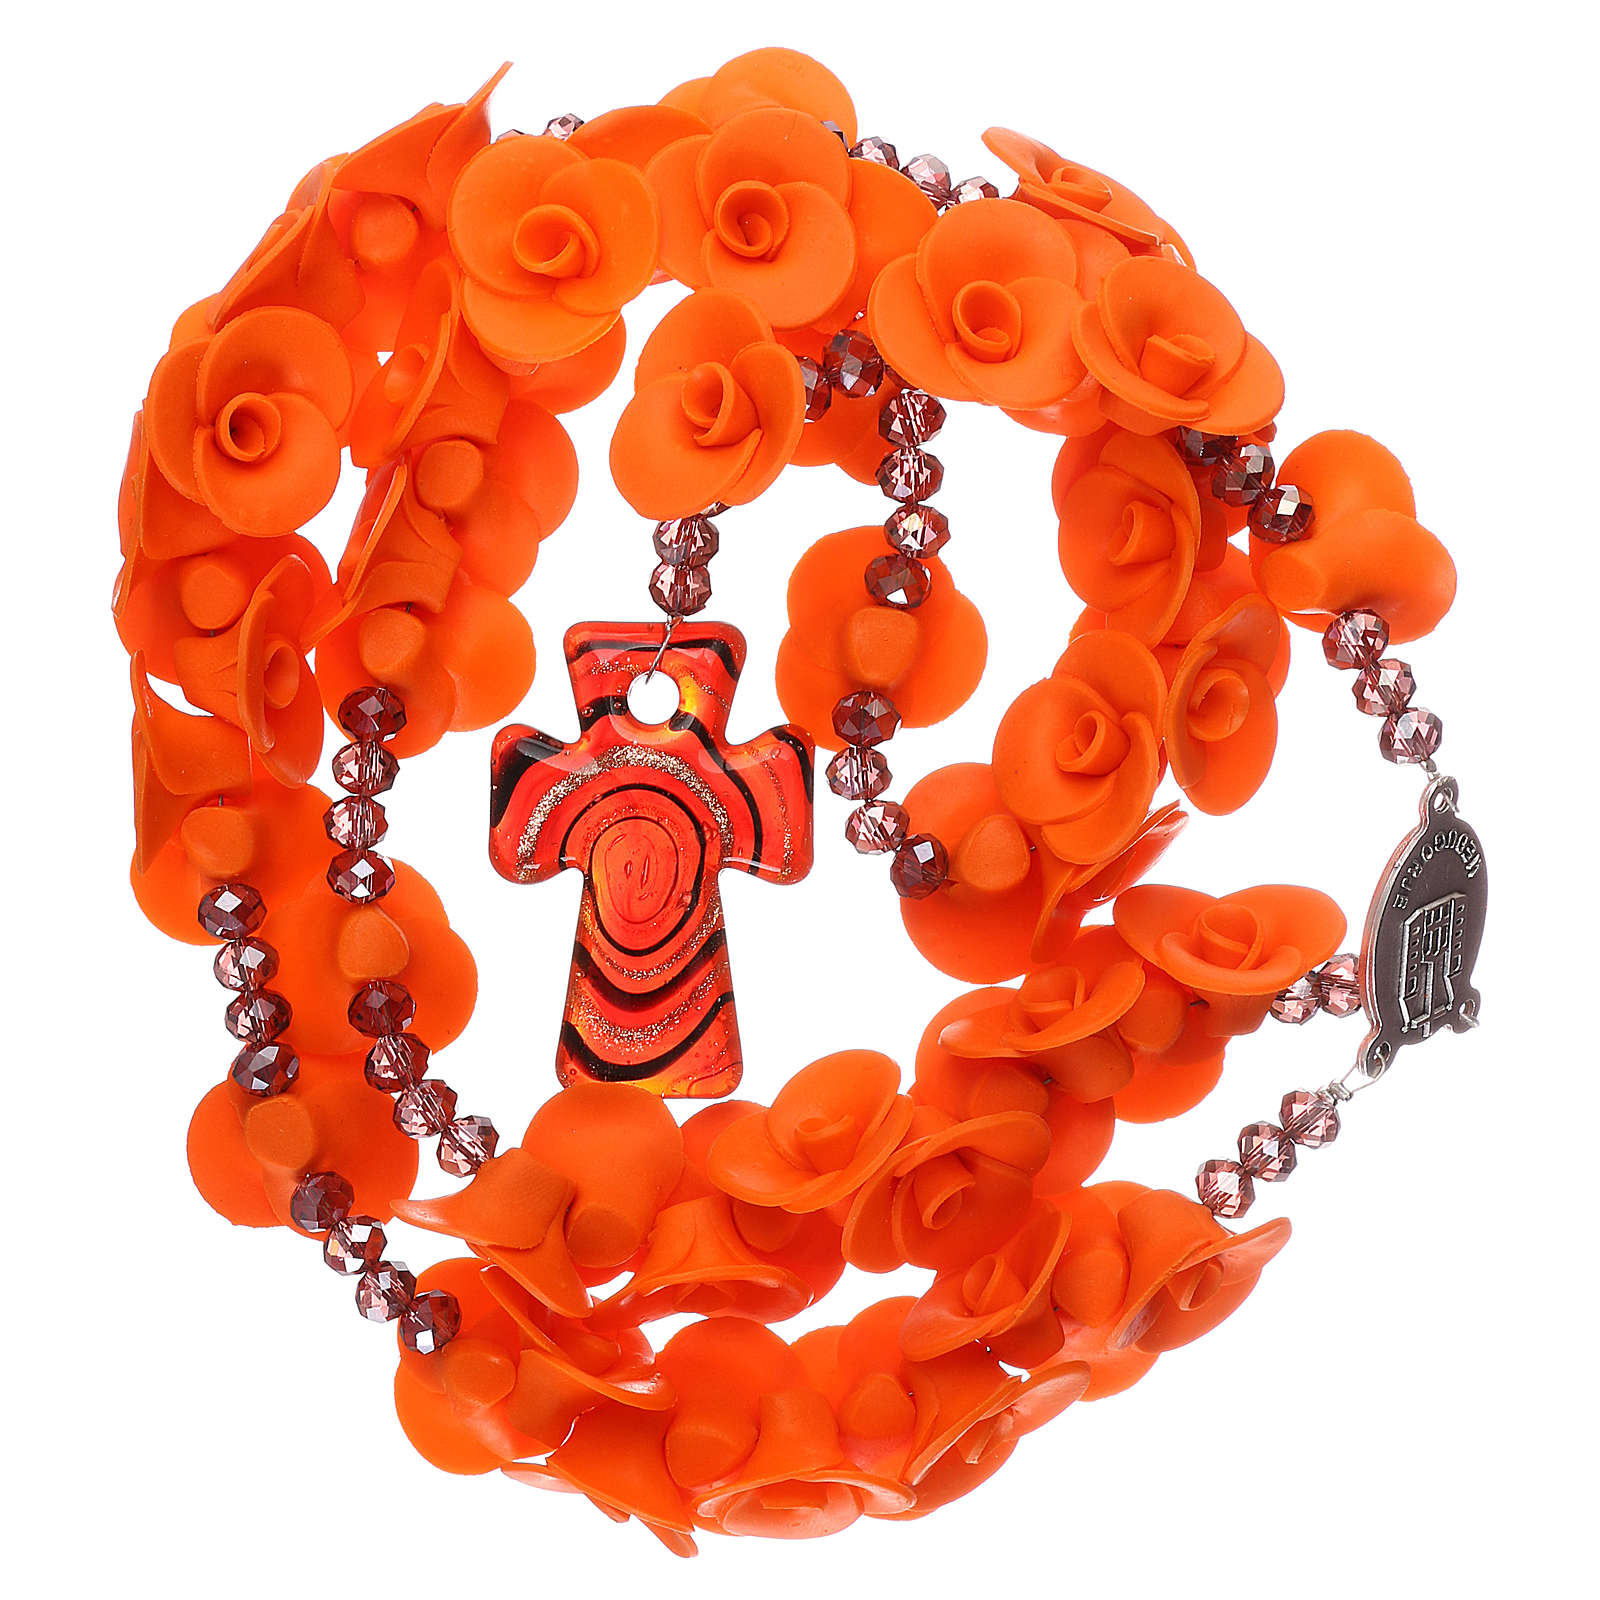 Medjugorje rosary beads with orange roses with cross in Murano glass 4